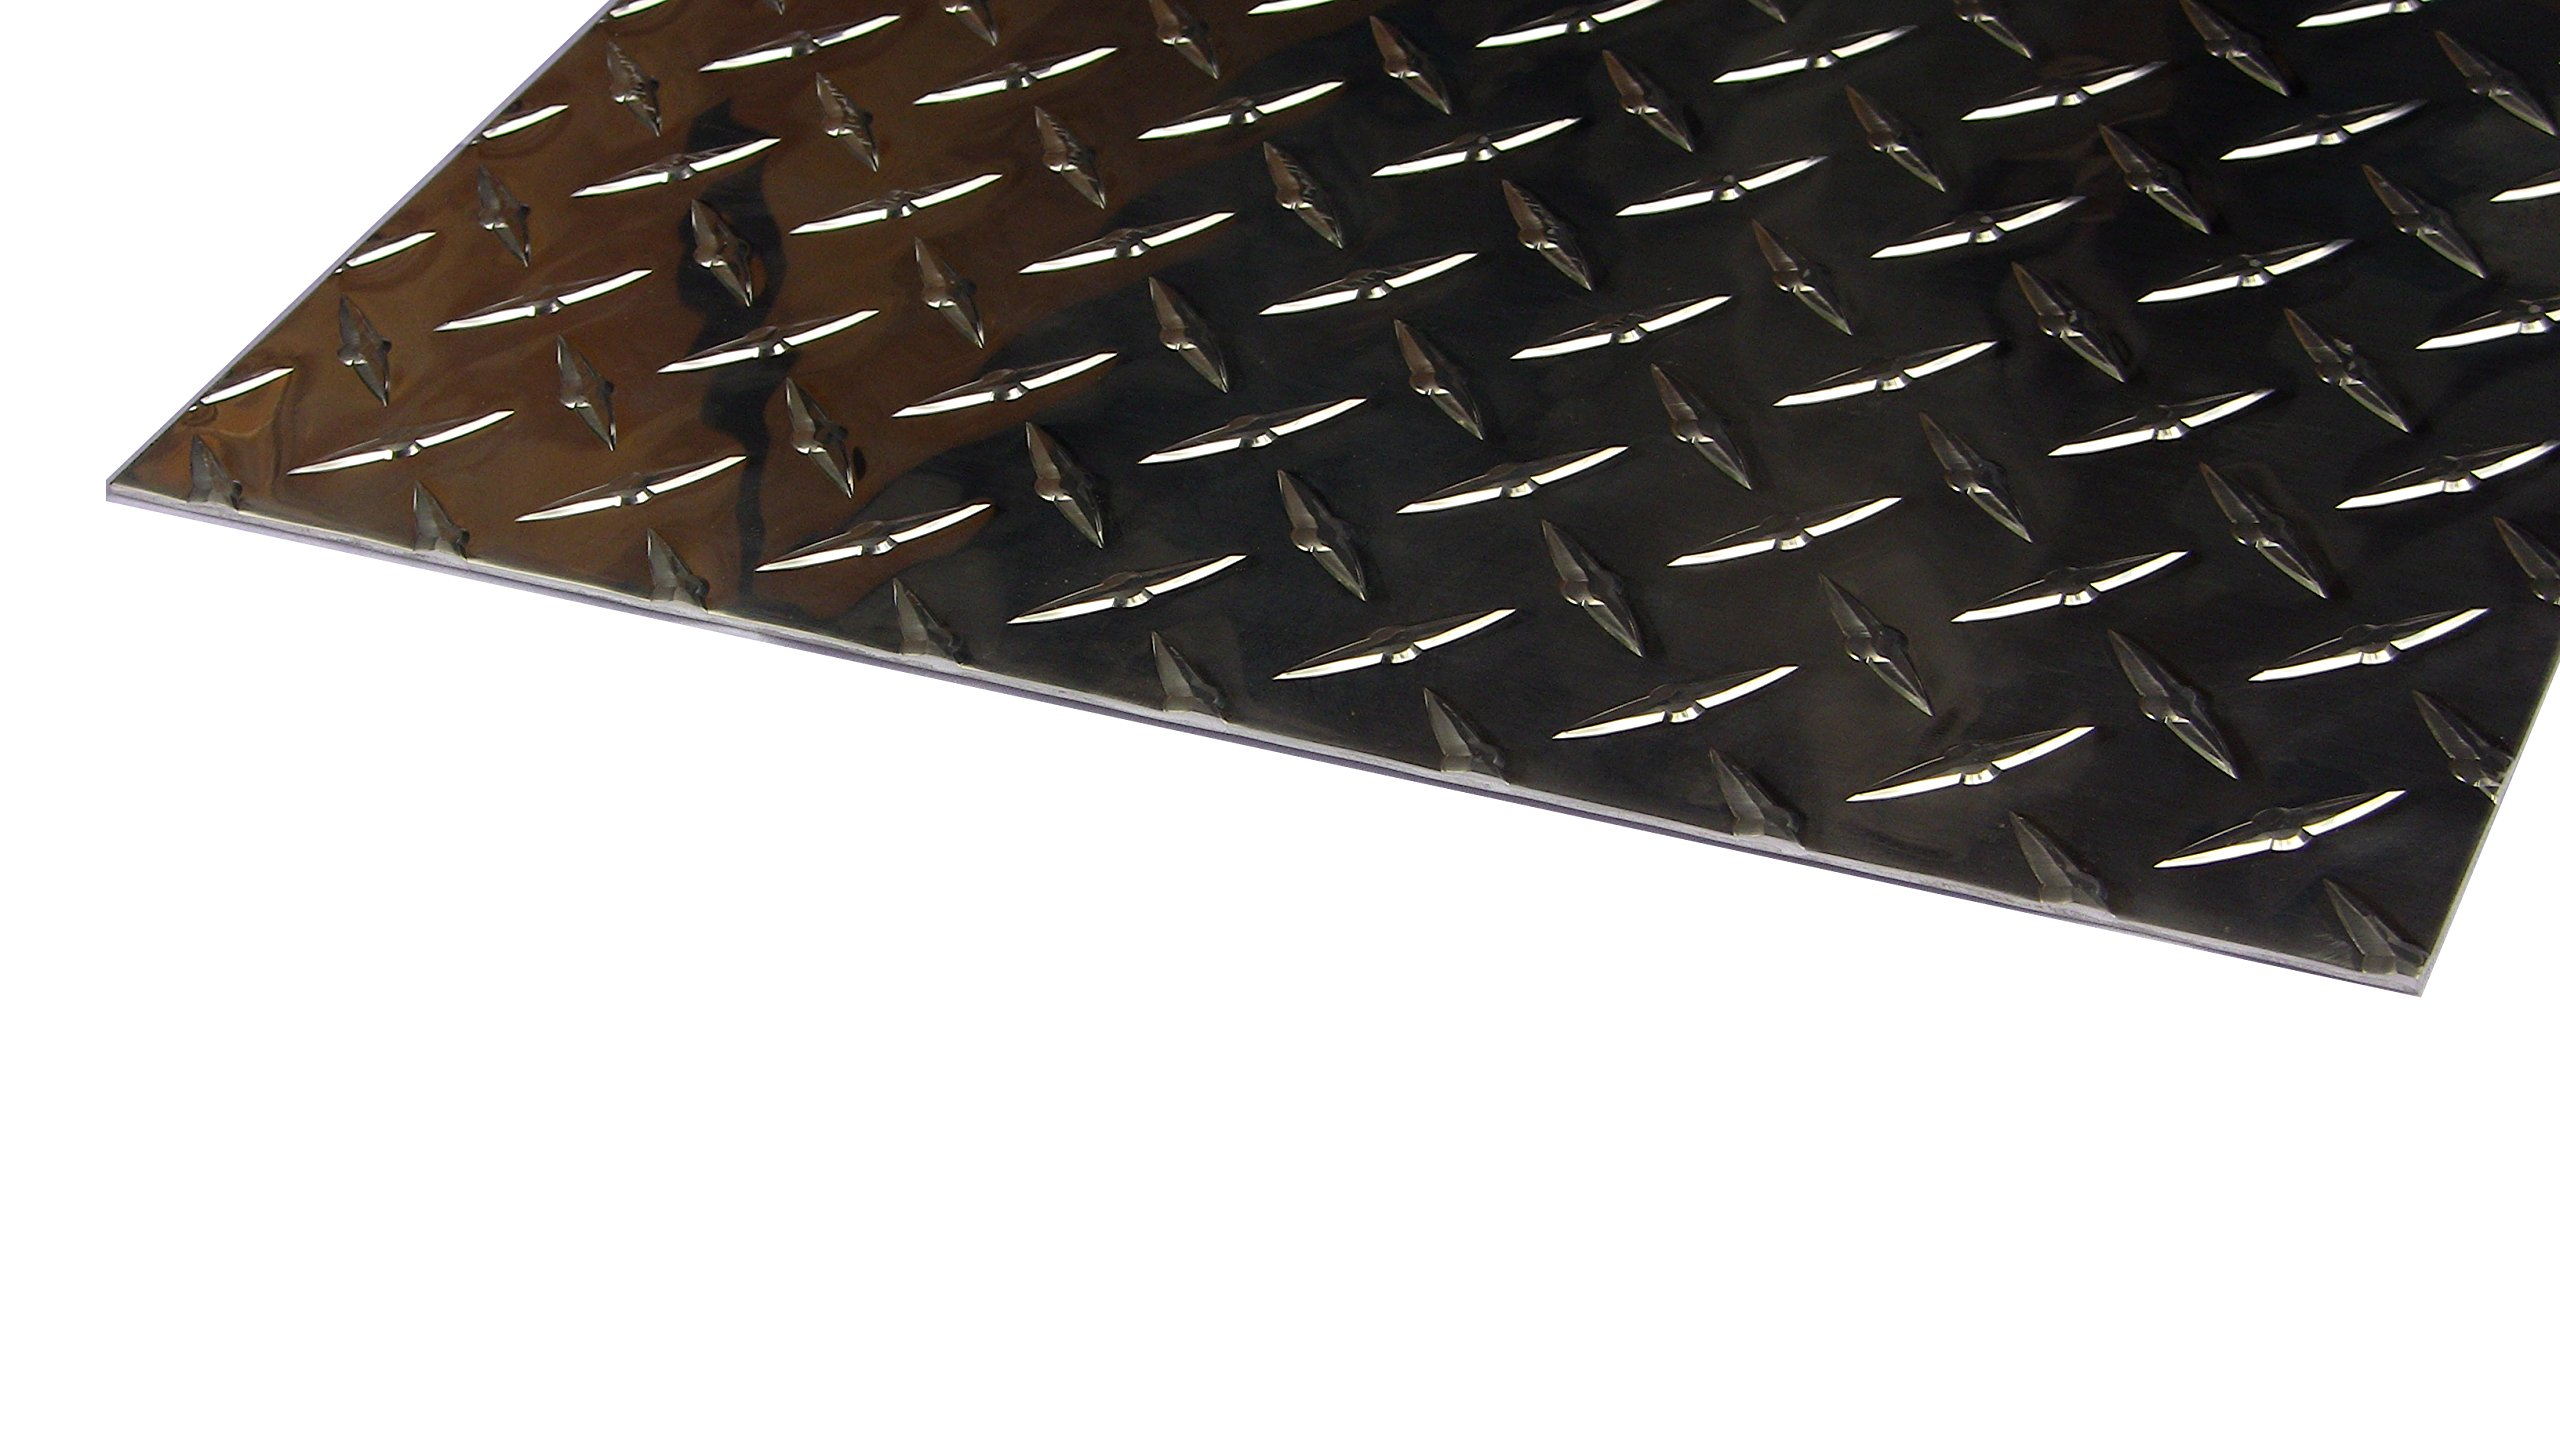 Aluminum Diamond Plate Door Kick Plate .062 x 12 x 24 in. w/out screws and holes | Kickplate (1/16 x 12 x 24 in.) UAAC